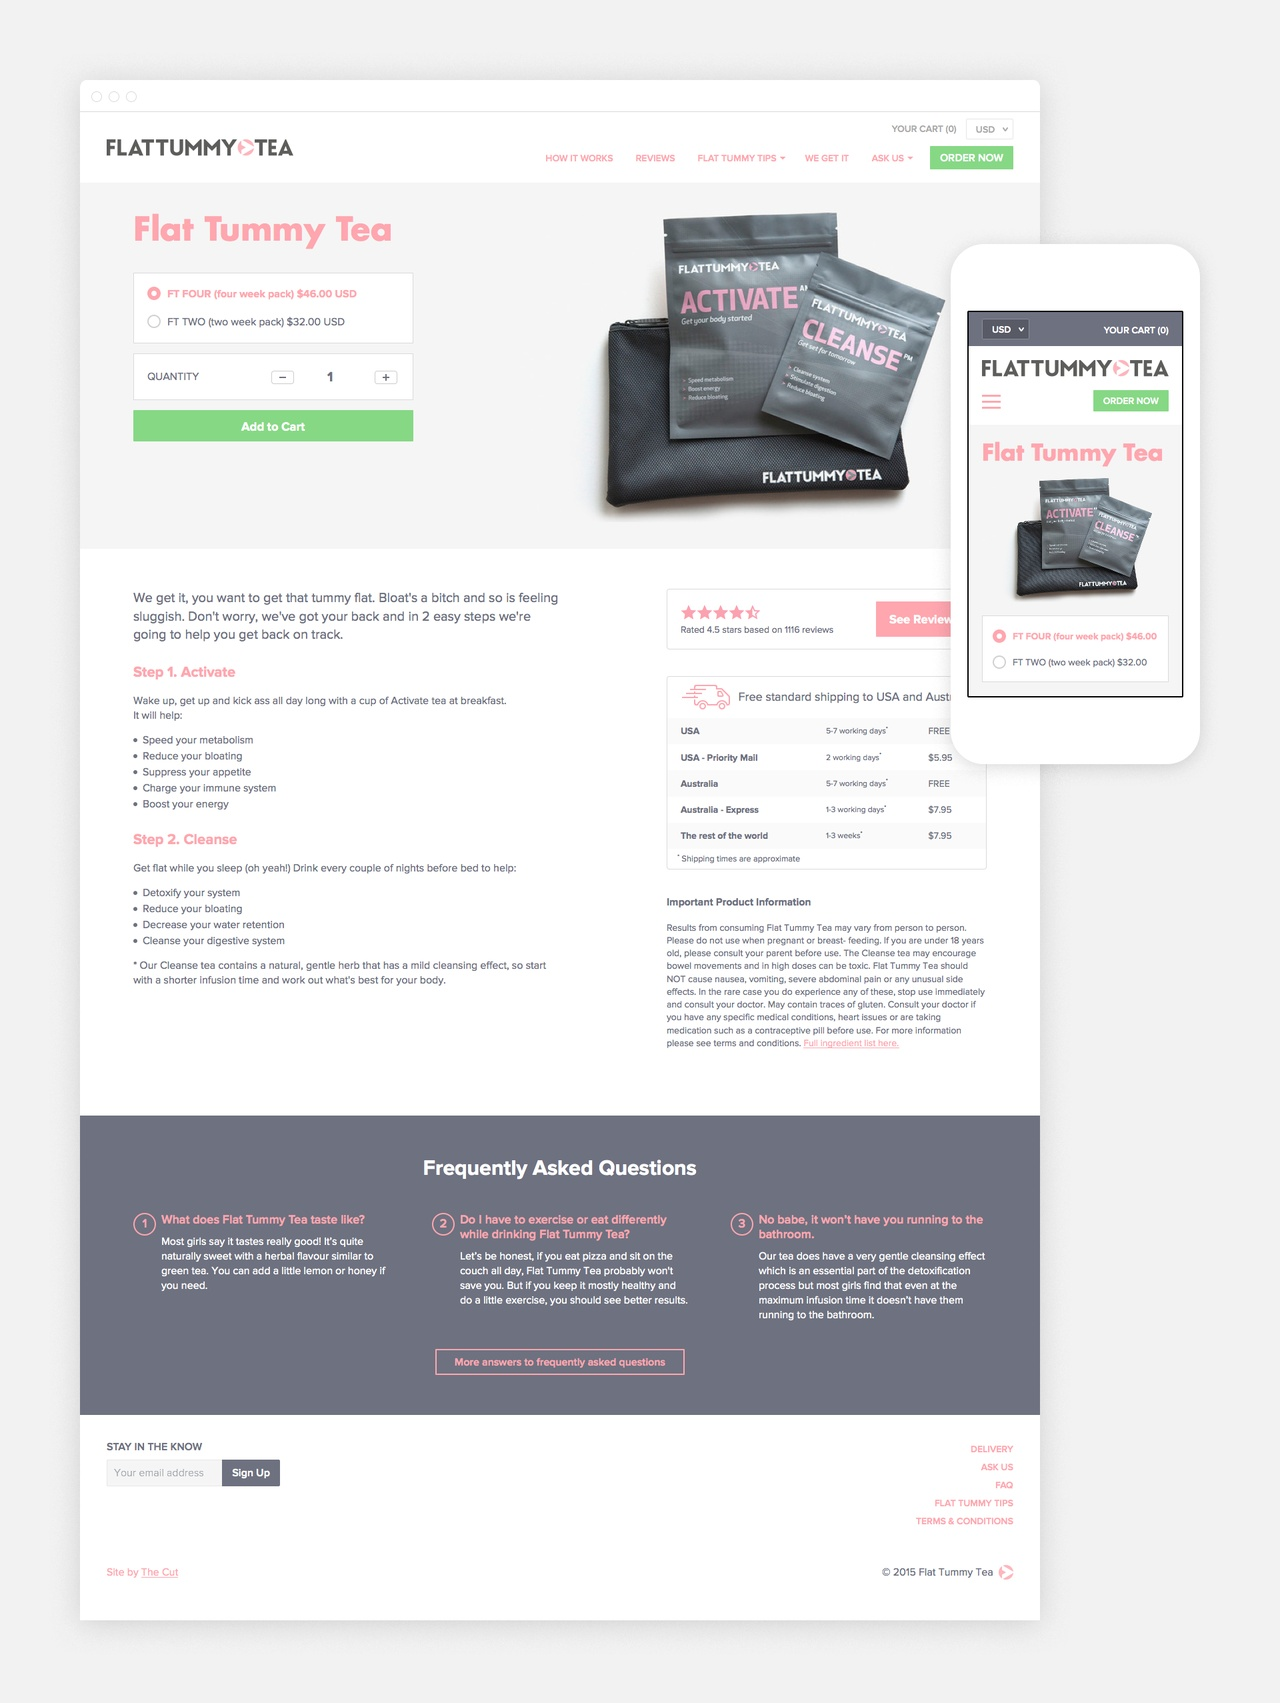 Product Pages encourage purchase & deliver information